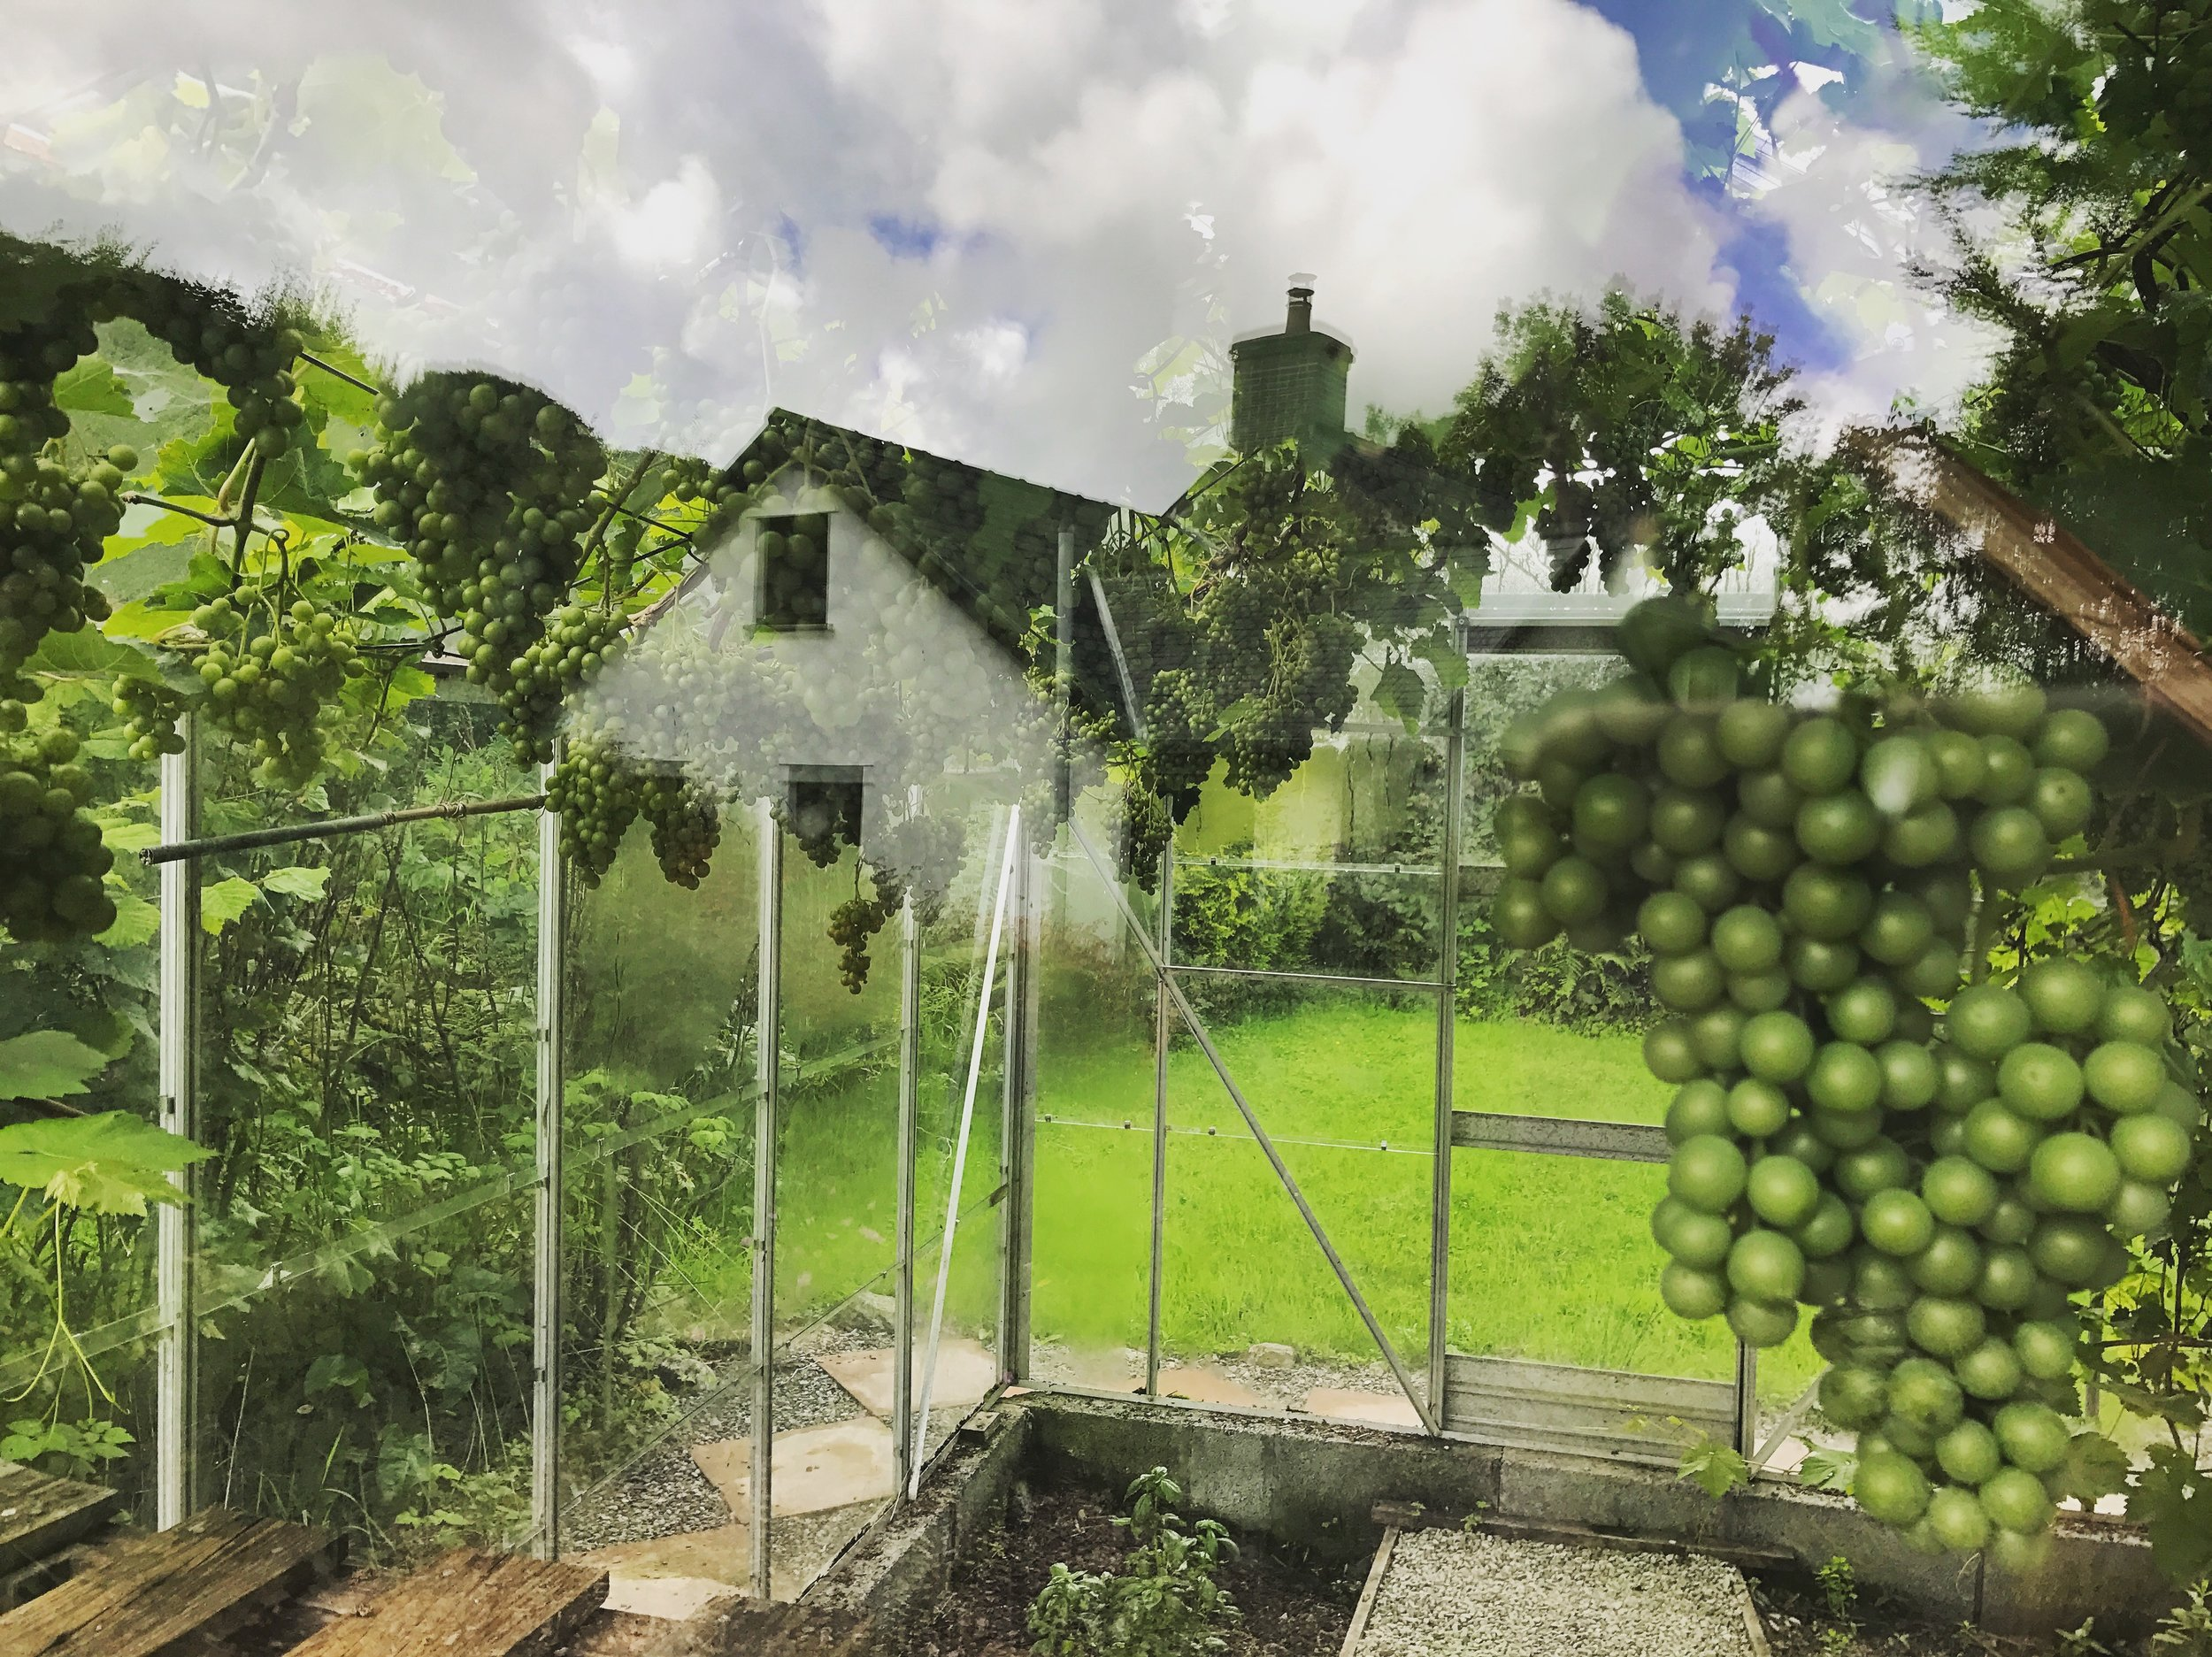 The house at Tyn y parc and the greenhouse with its mature grape vine. Photo by Sophie Stone, 2017.